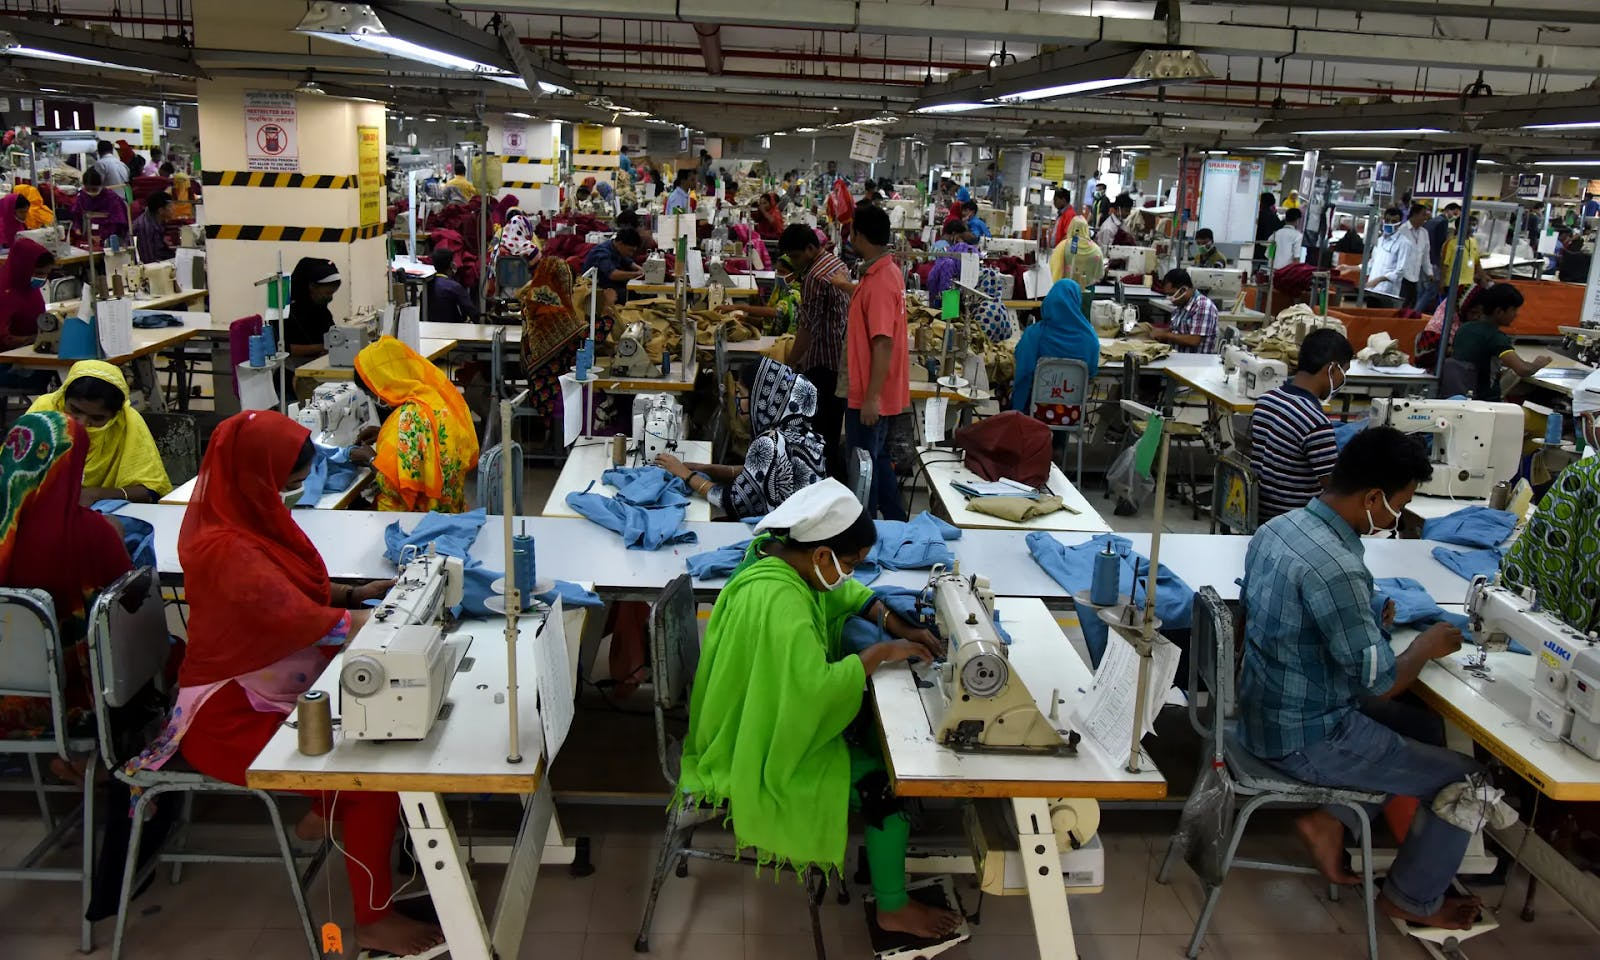 Garment workers tightly packed into a factory in Dhaka, Bangladesh. Photograph by NurPhoto via Getty Images